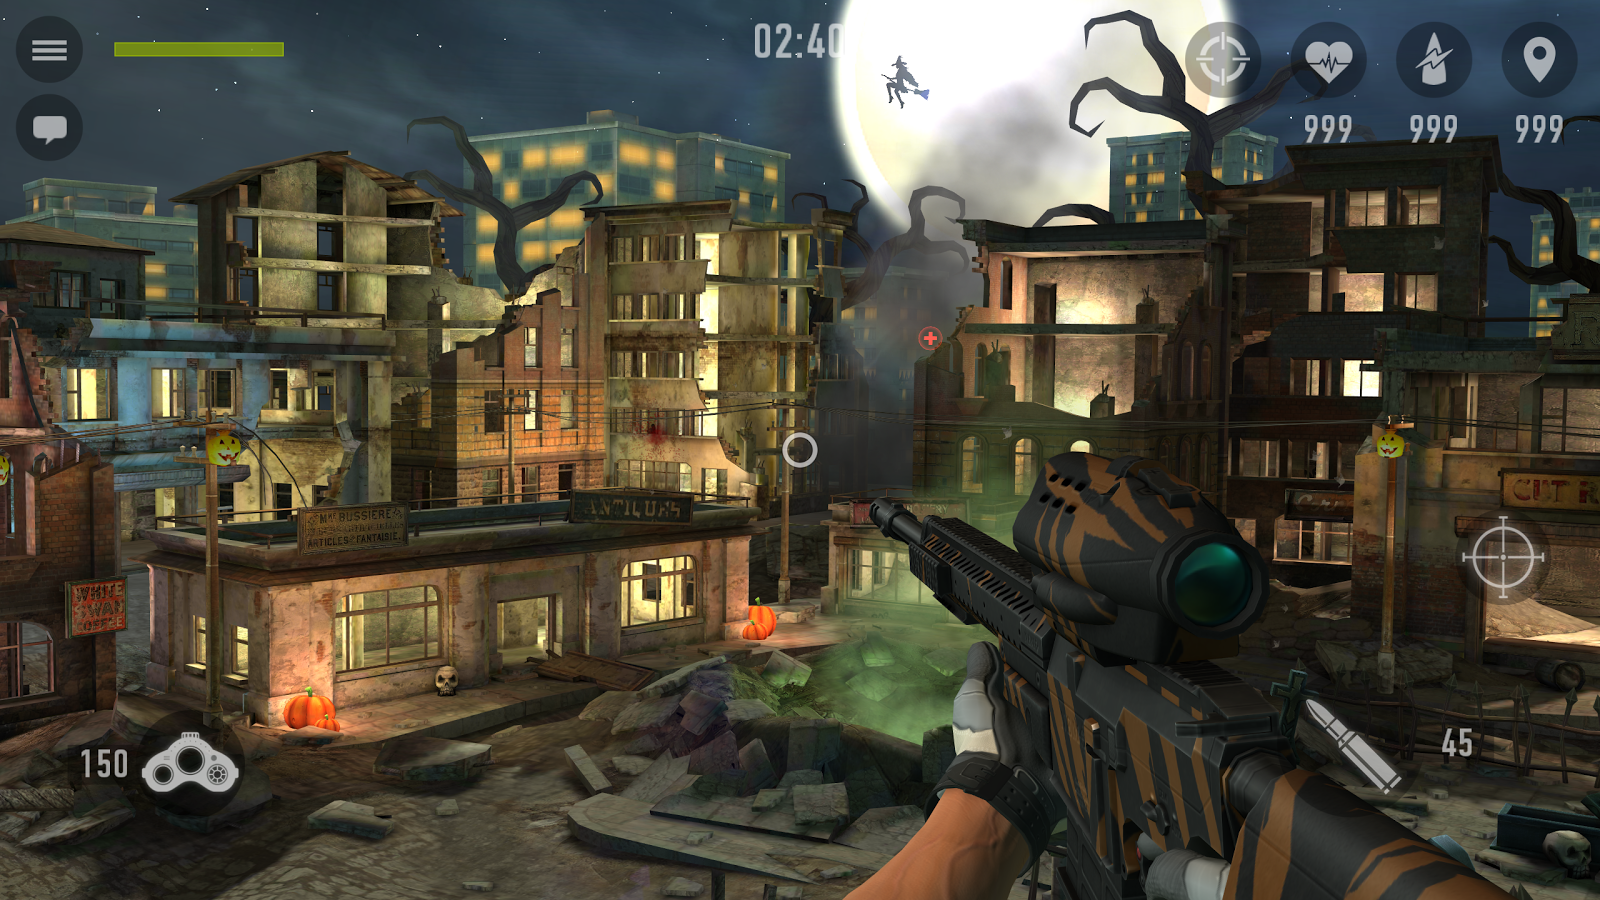 sniper arena pvp army shooter android apps on google play